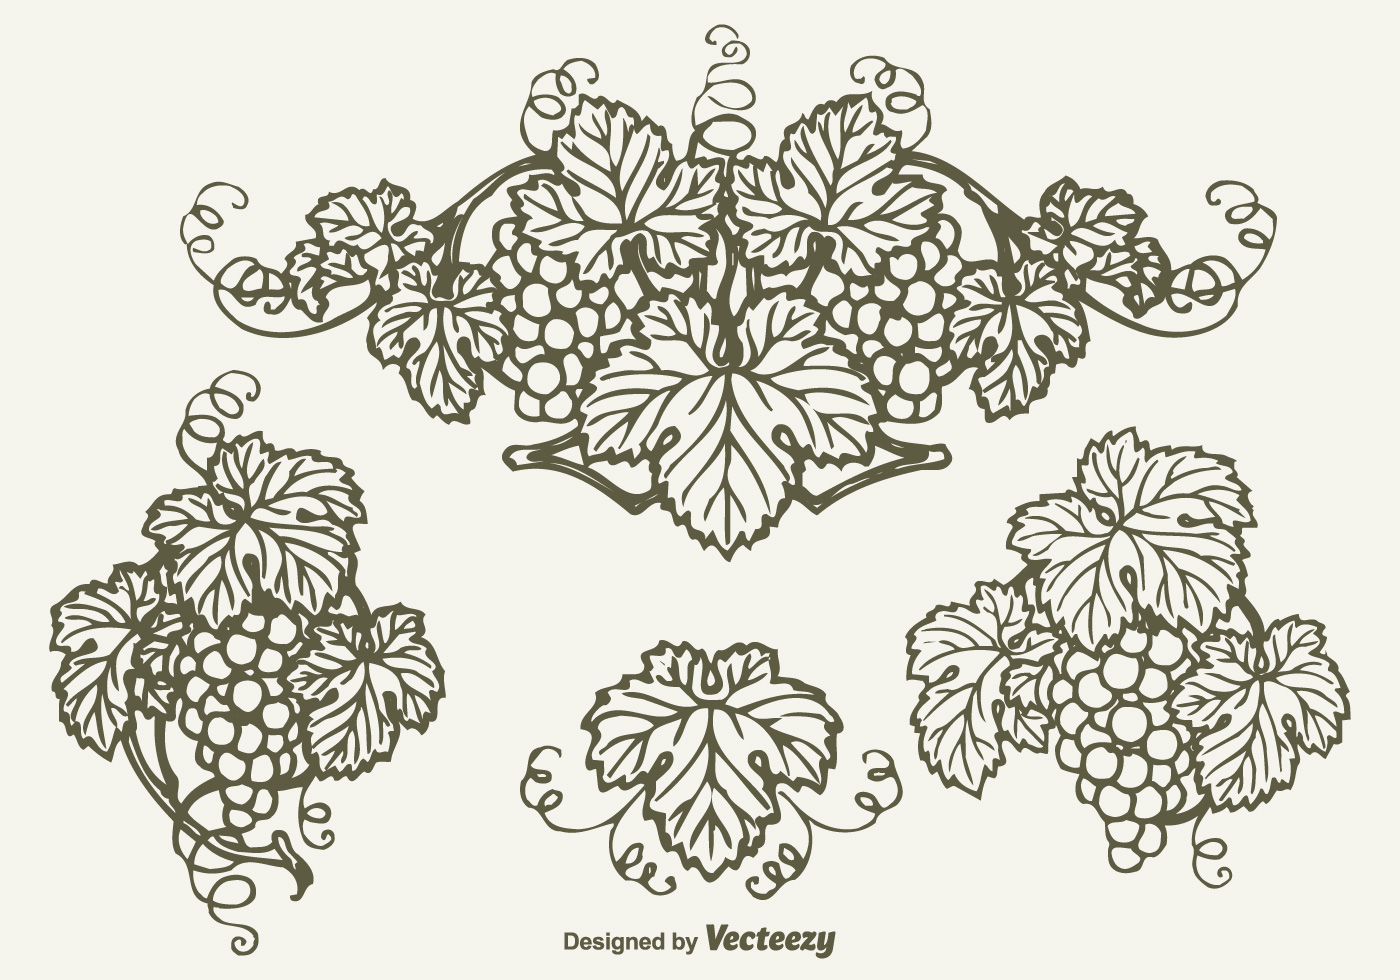 Drawn Bunch Of Grapes Vector Design Download Free Vector